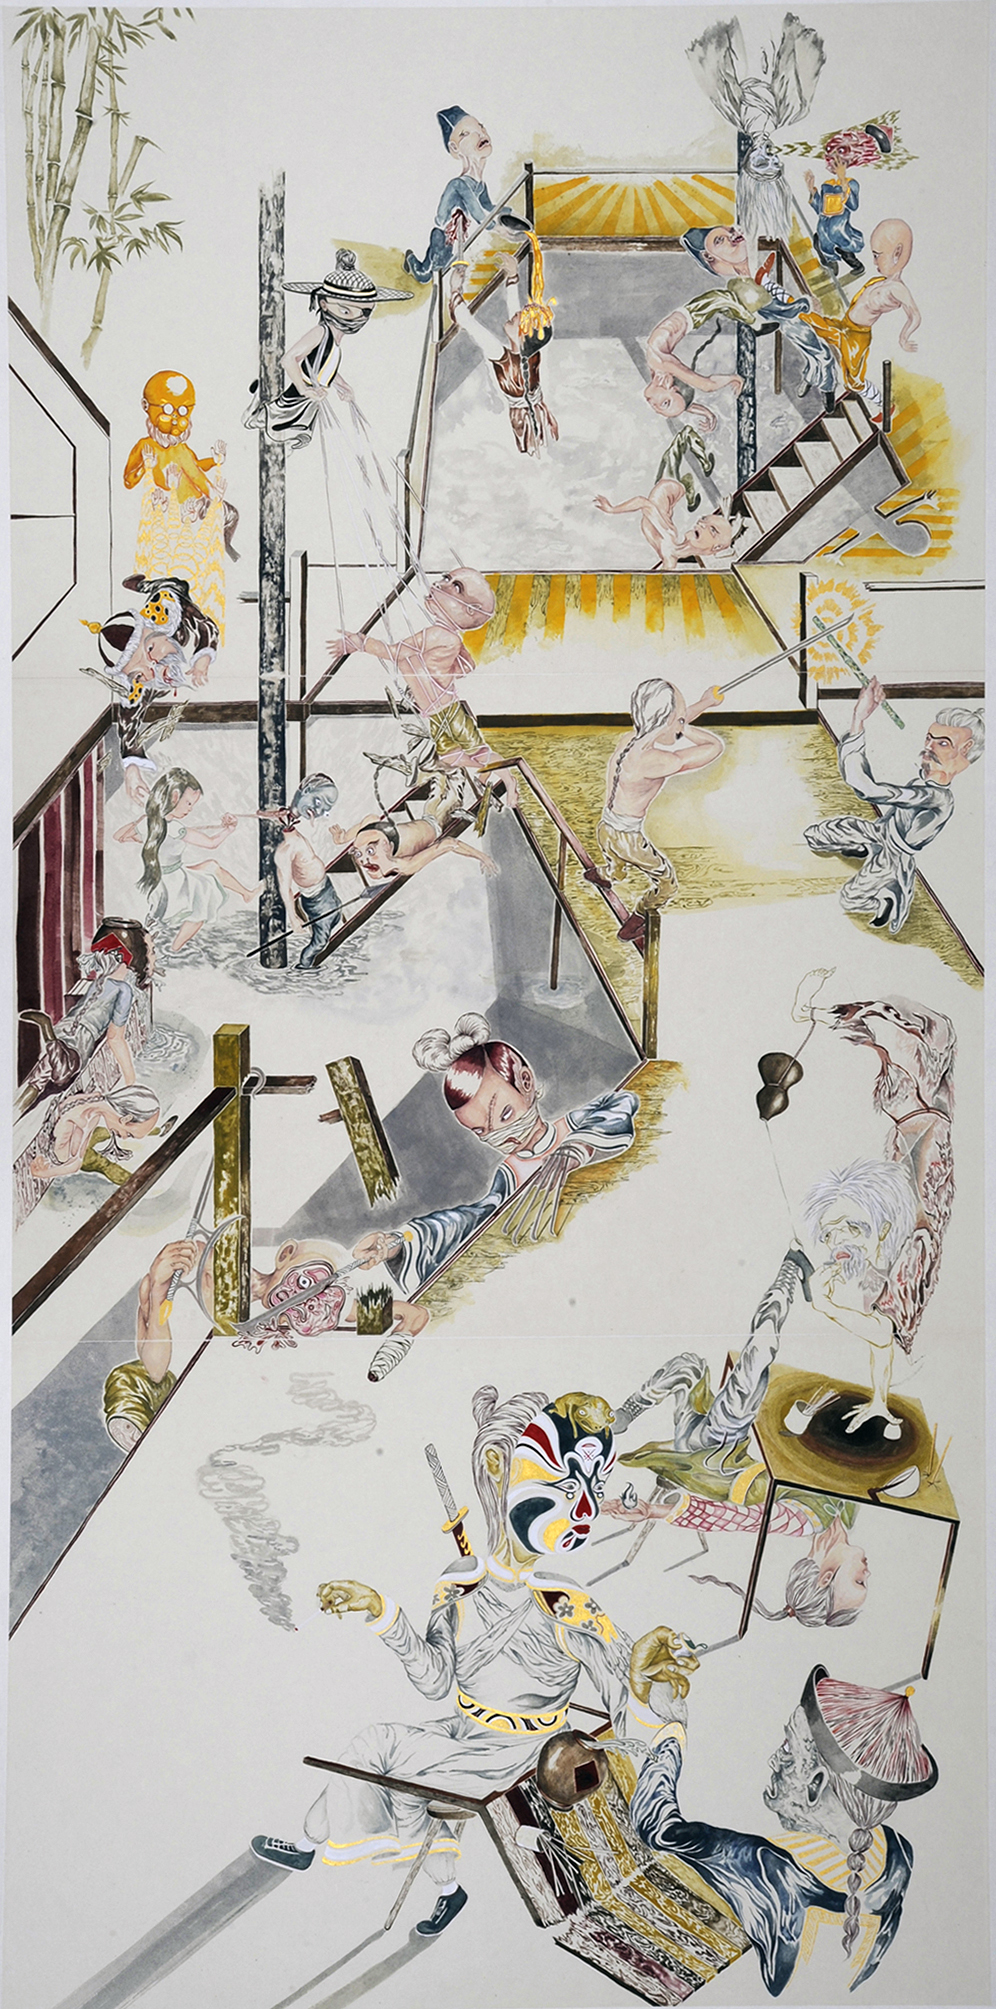 Howie Tsui 徐浩恩, Retainers of Anarchy (Tavern Havoc) 门客混战之客栈浩劫, 2015, Ink and paint pigment on mulberry paper 桑皮纸、颜料与墨, 209 x 109 cm